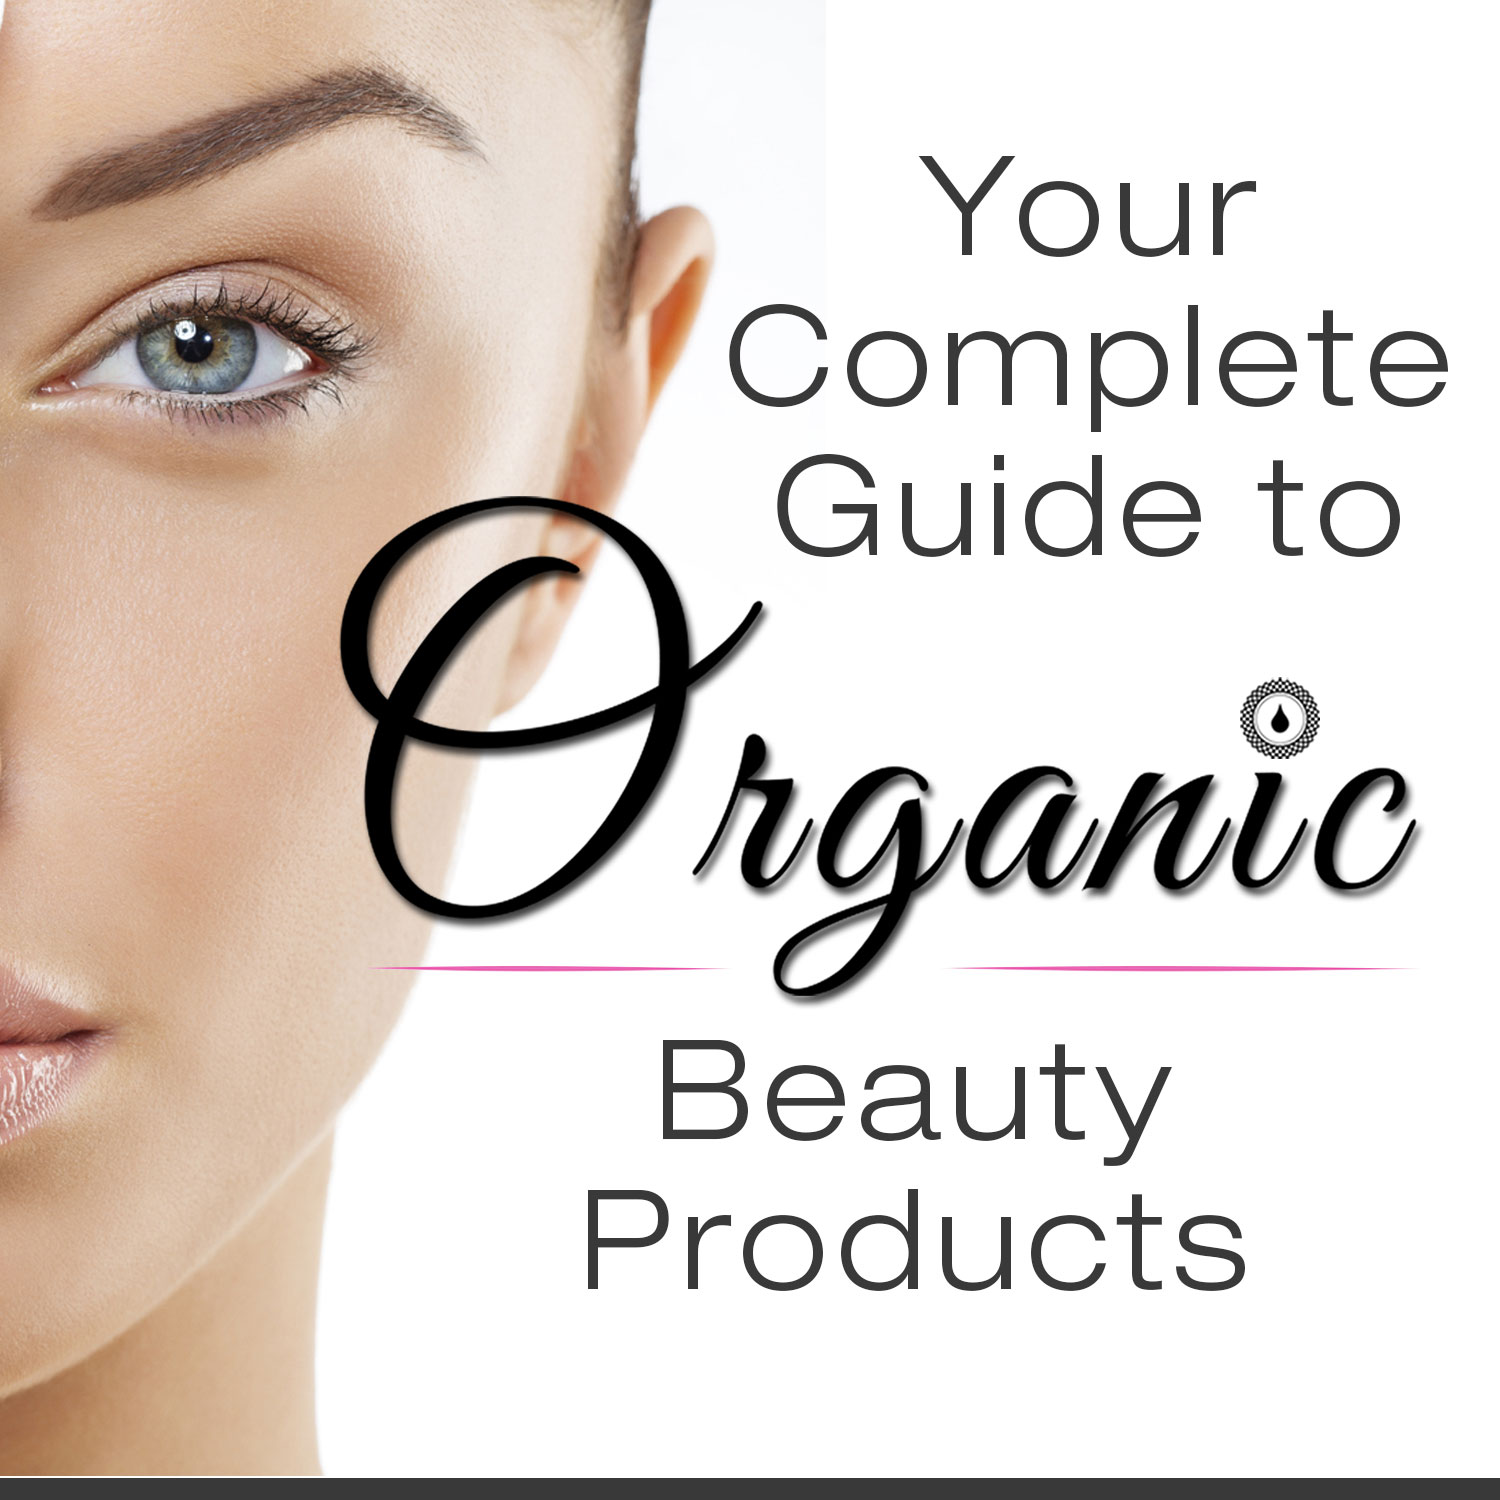 Your Complete Guide to Organic Beauty Products